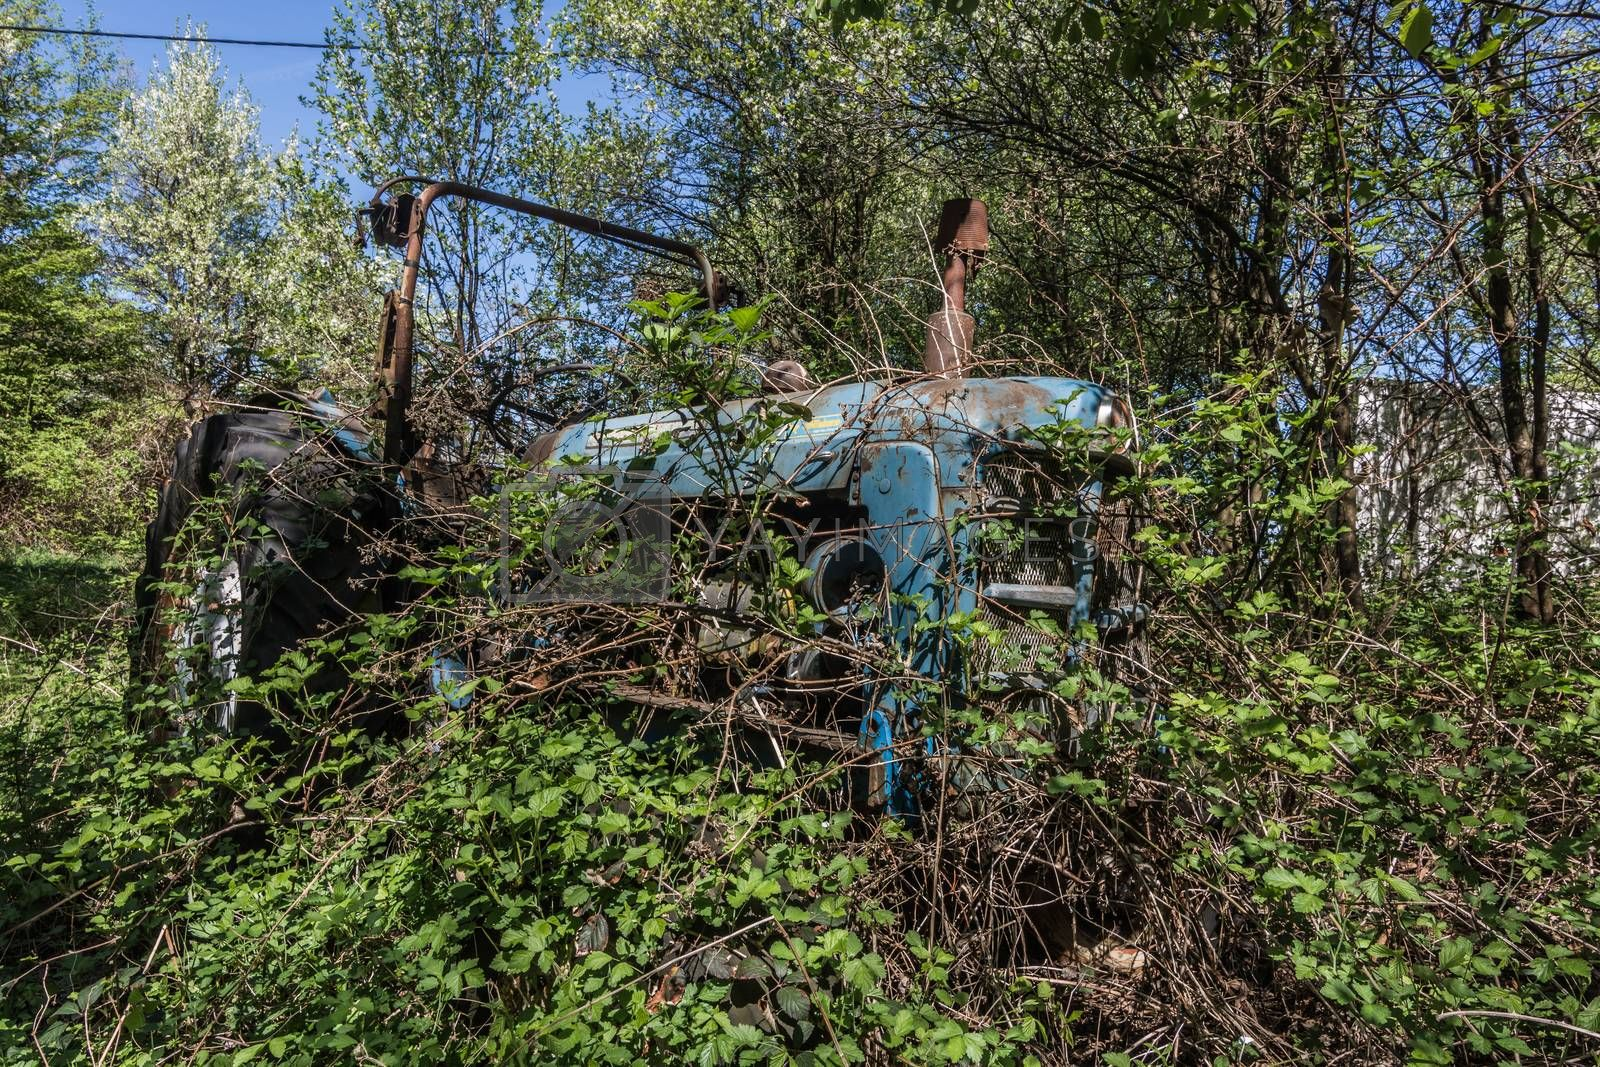 overgrown blue tractor in nature at a farm